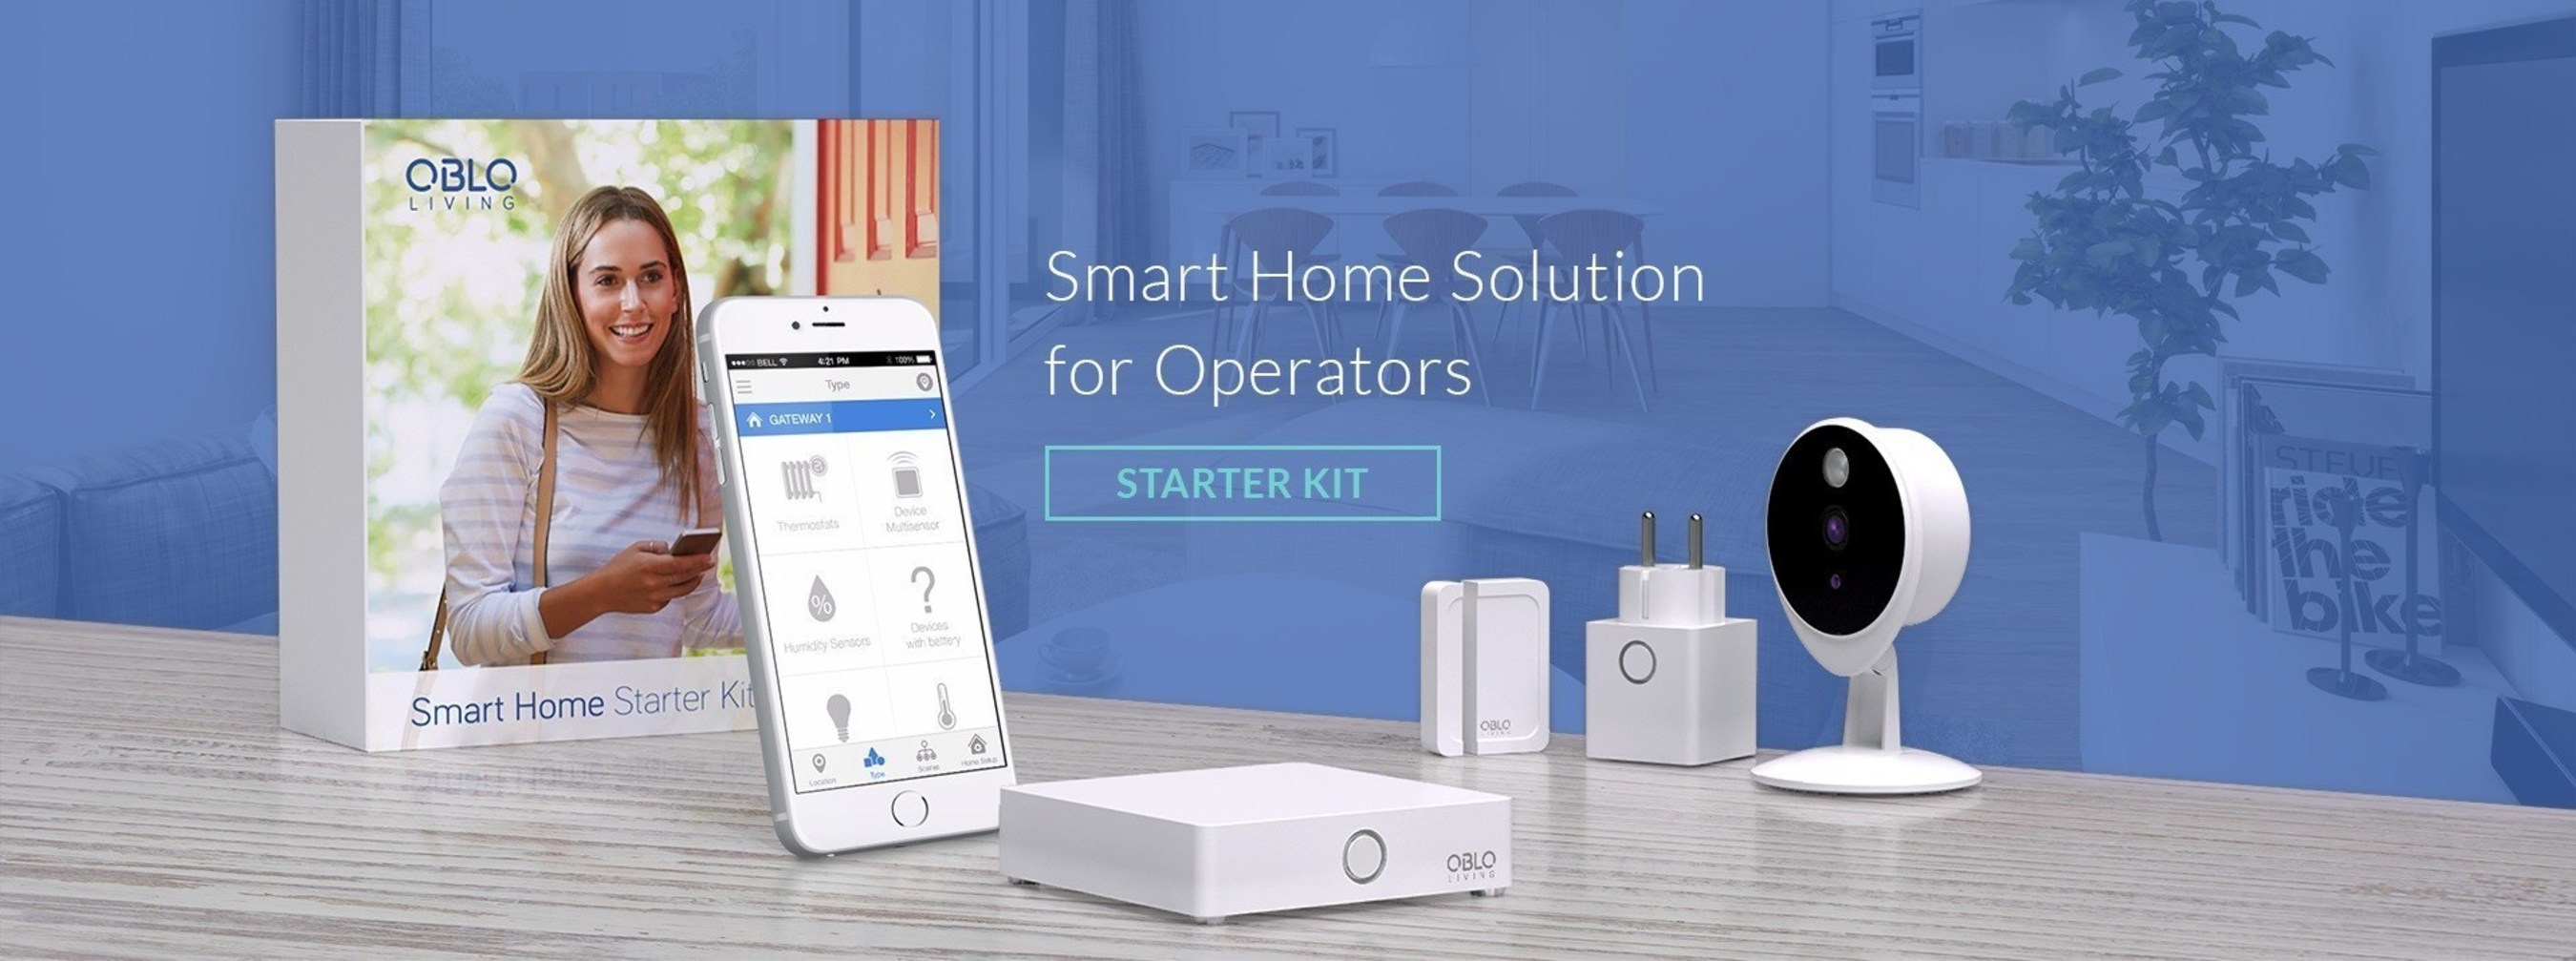 OBLO Living to present its Home Automation at IBC 2016